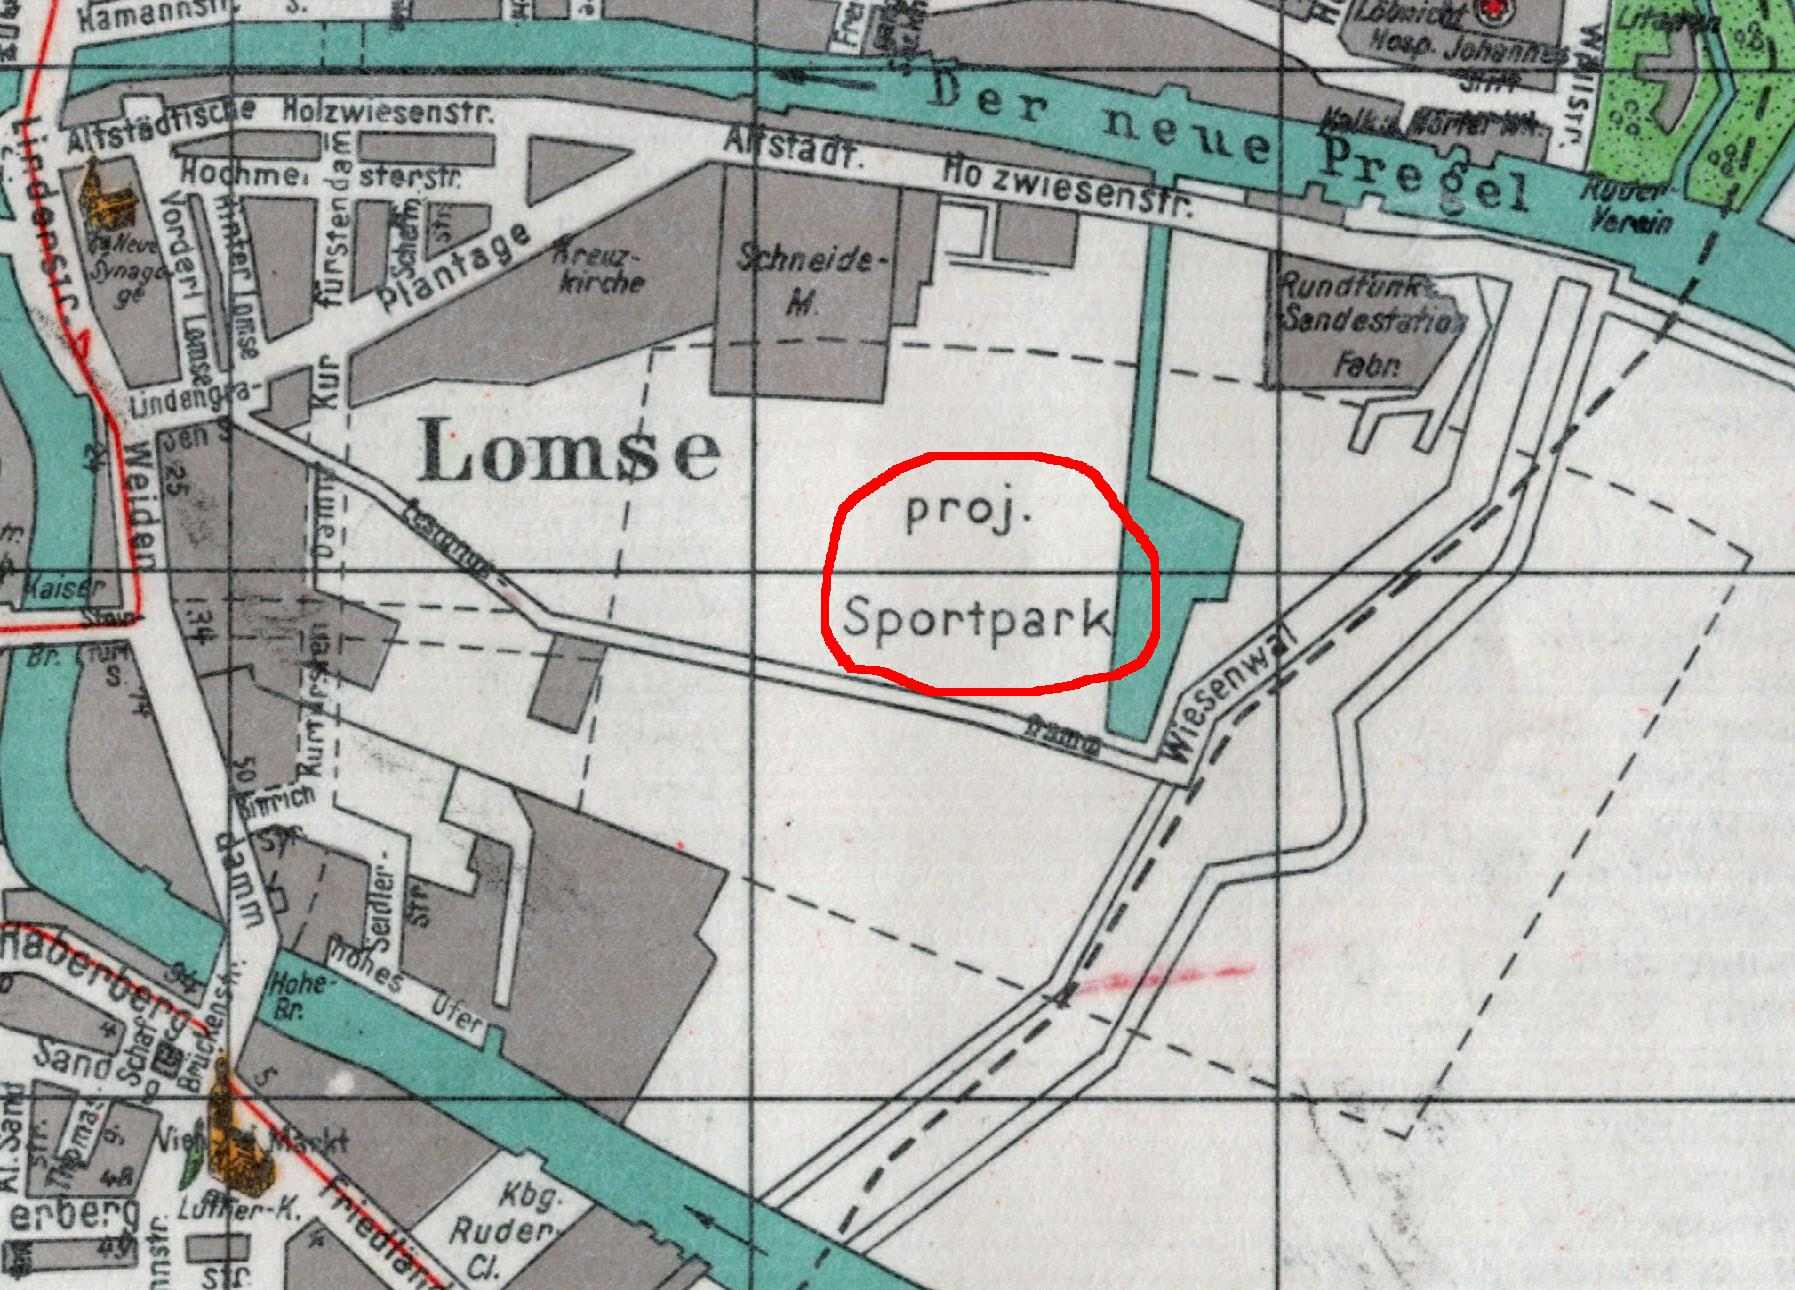 LOMSE_PLAN_OF_KOENIGSBERG_1944.jpg